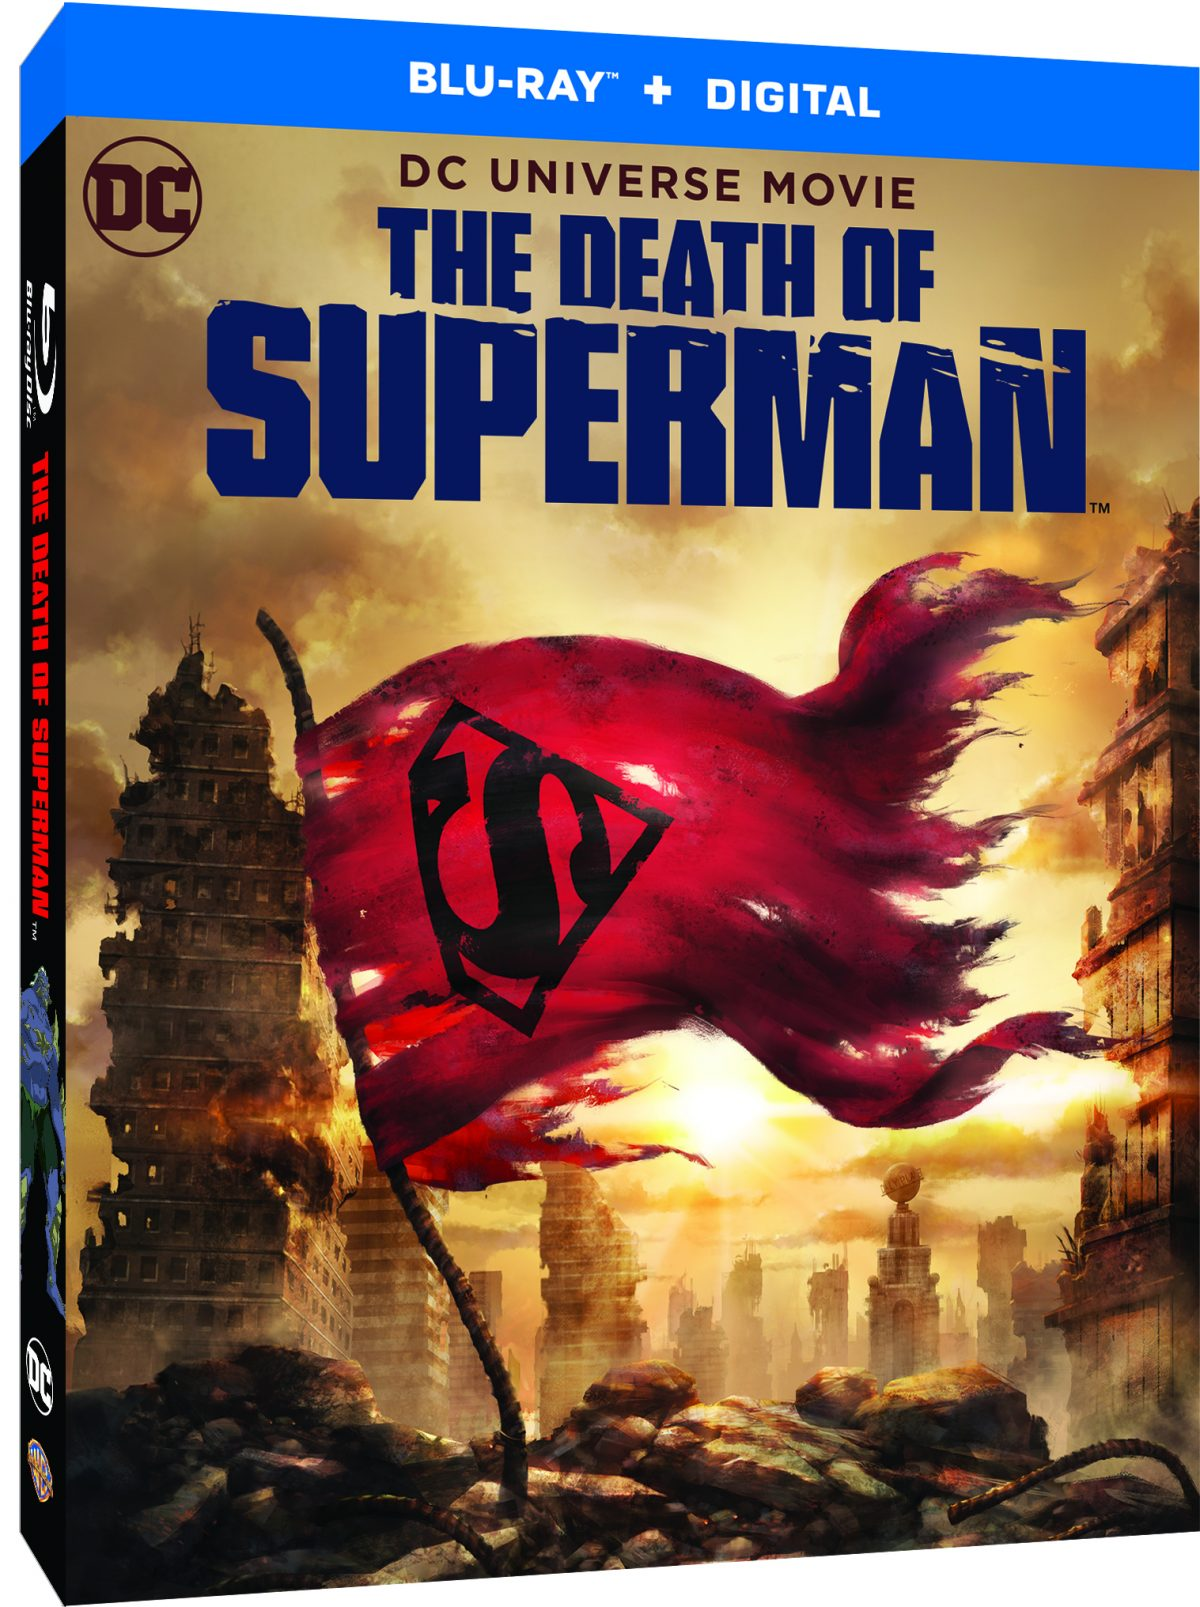 #EnterToWin The Death of #Superman on DVD - Out now on Digital Download Out on Blu-ray™ and DVD 6 August http://po.st/nODqii  Ends 17 Aug 2018, 23:59.